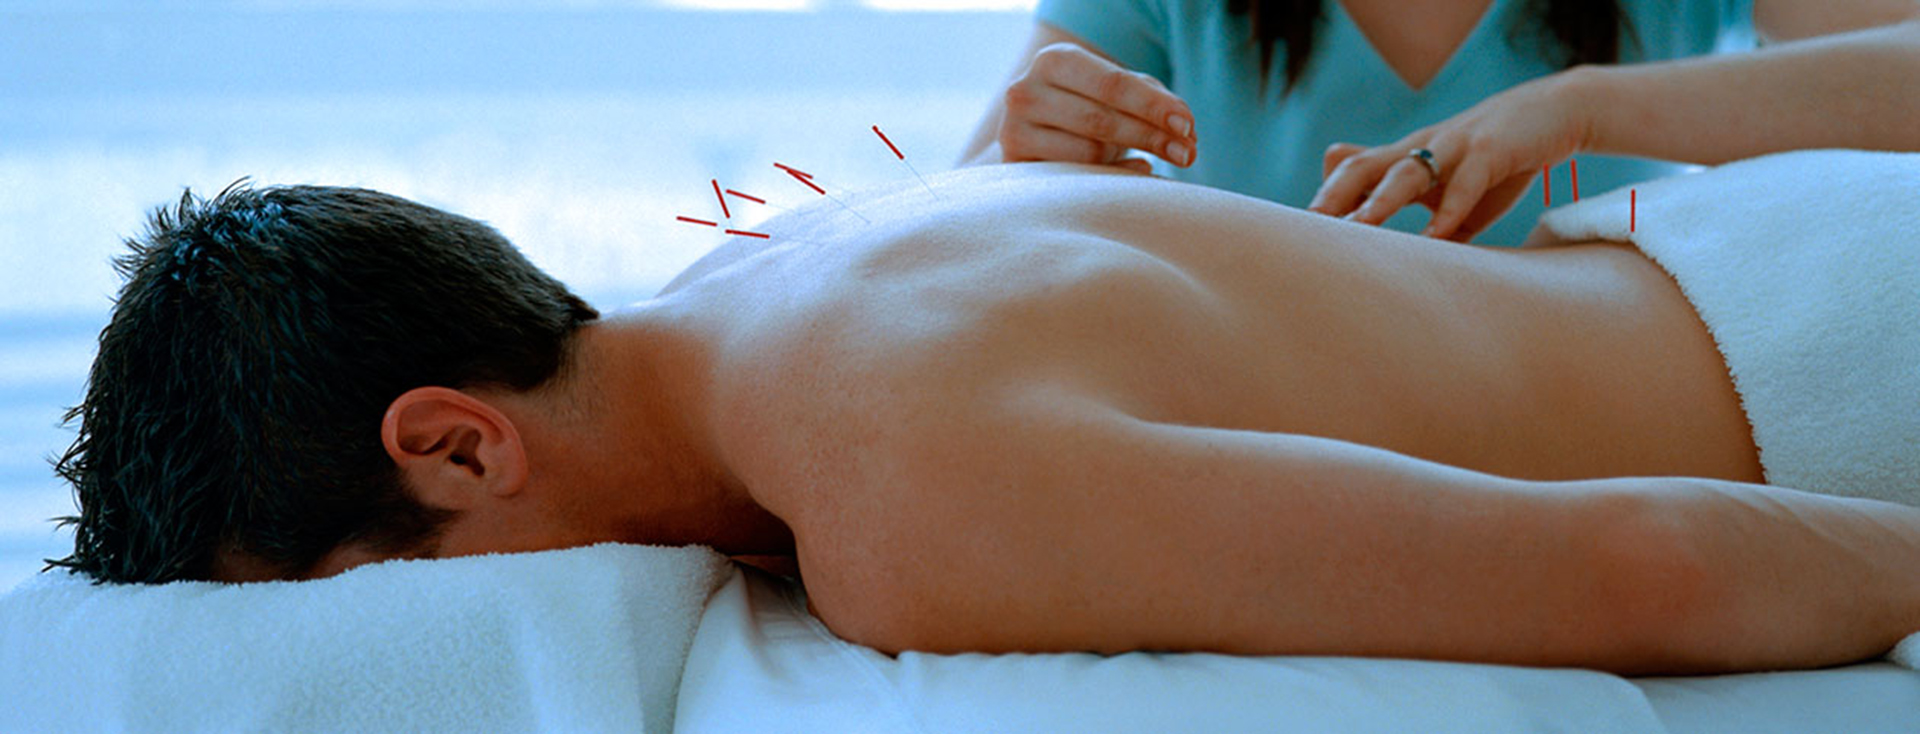 acupuncture and cupping near me